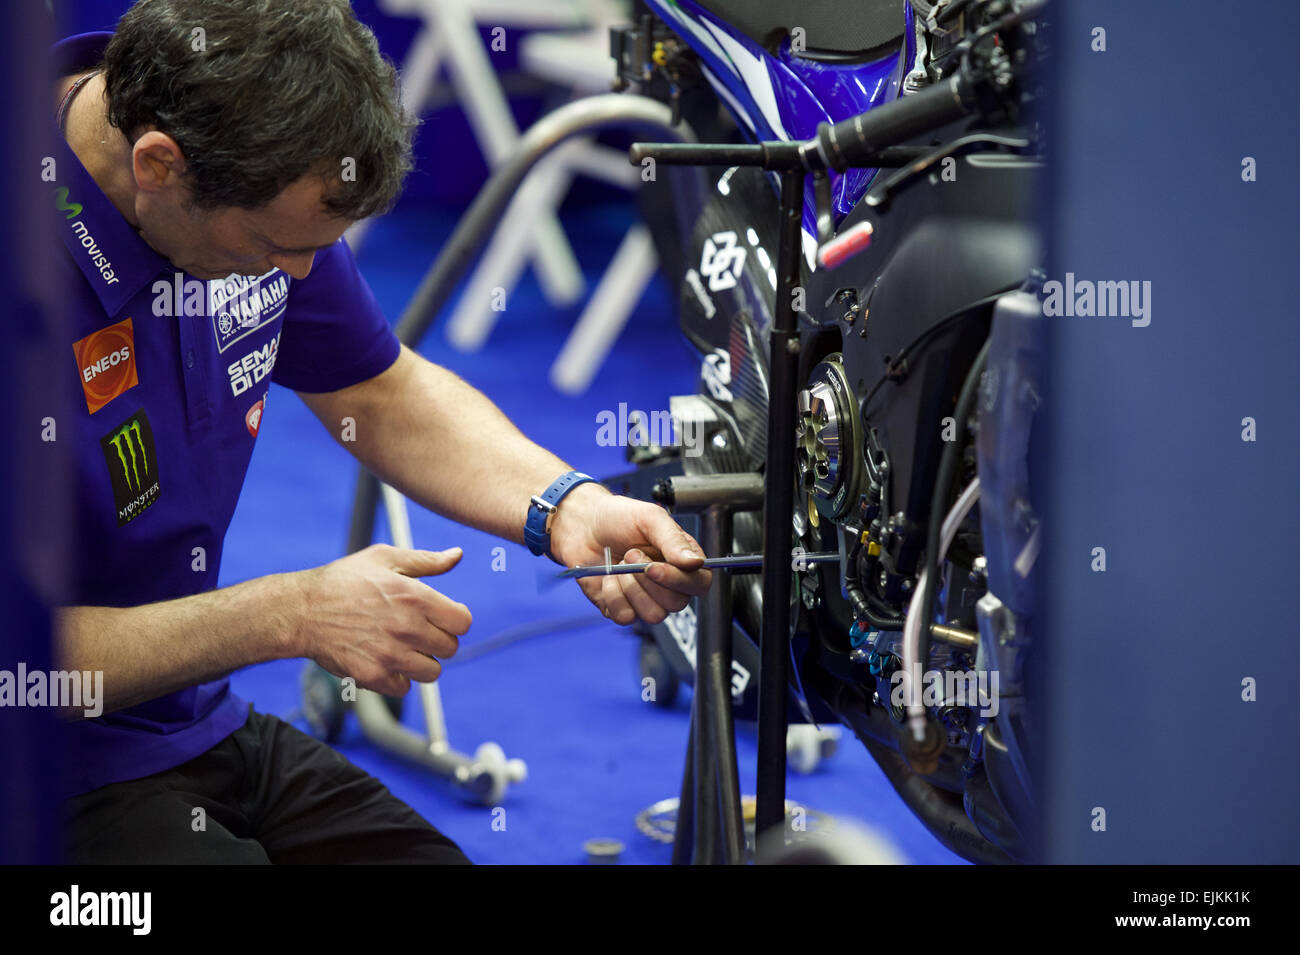 Losail Circuit, Qatar 28th March 2015, a team mechanic prepares the bike of Jorge Lorenzo during qualifying for - Stock Image